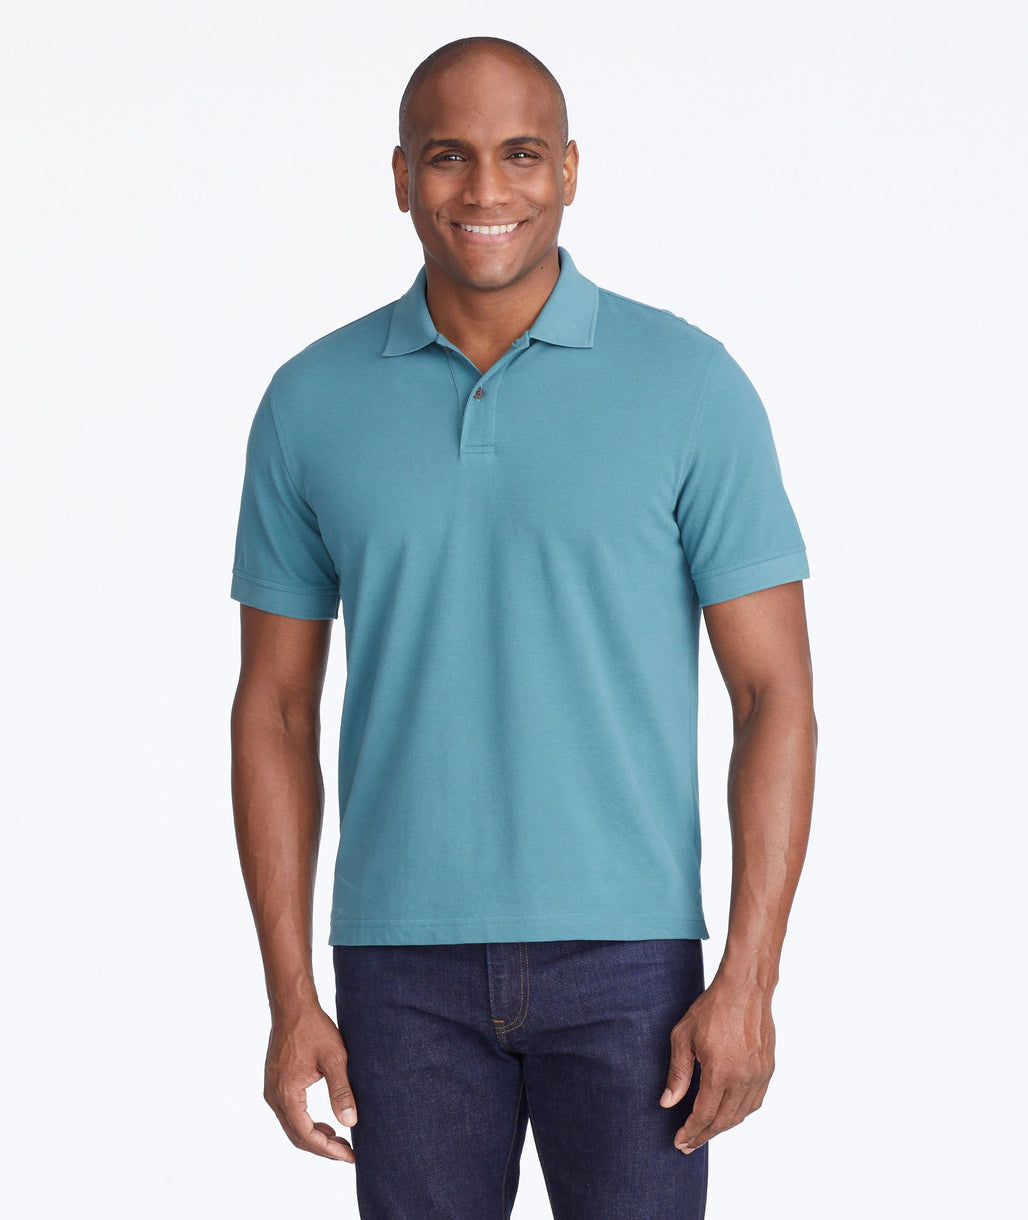 Model wearing a Light Green Classic Pique Polo